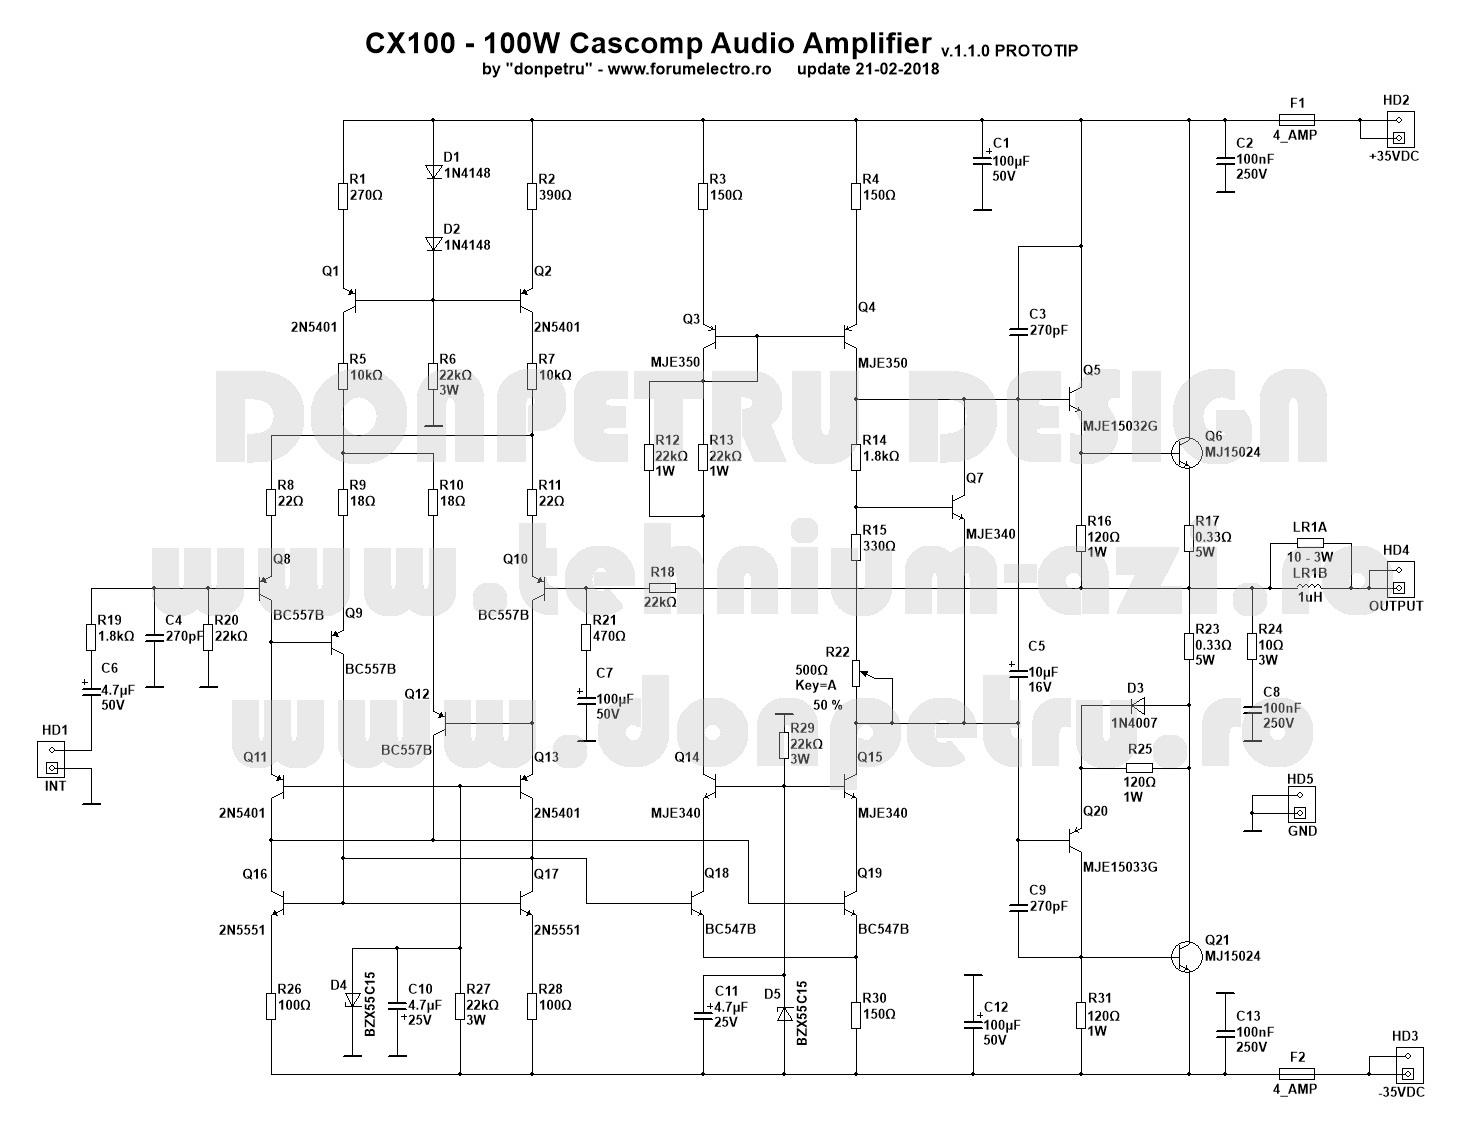 CX100 v.1.1.0 - CASCOMP HiFi Audio Amplifier (prototip).jpg